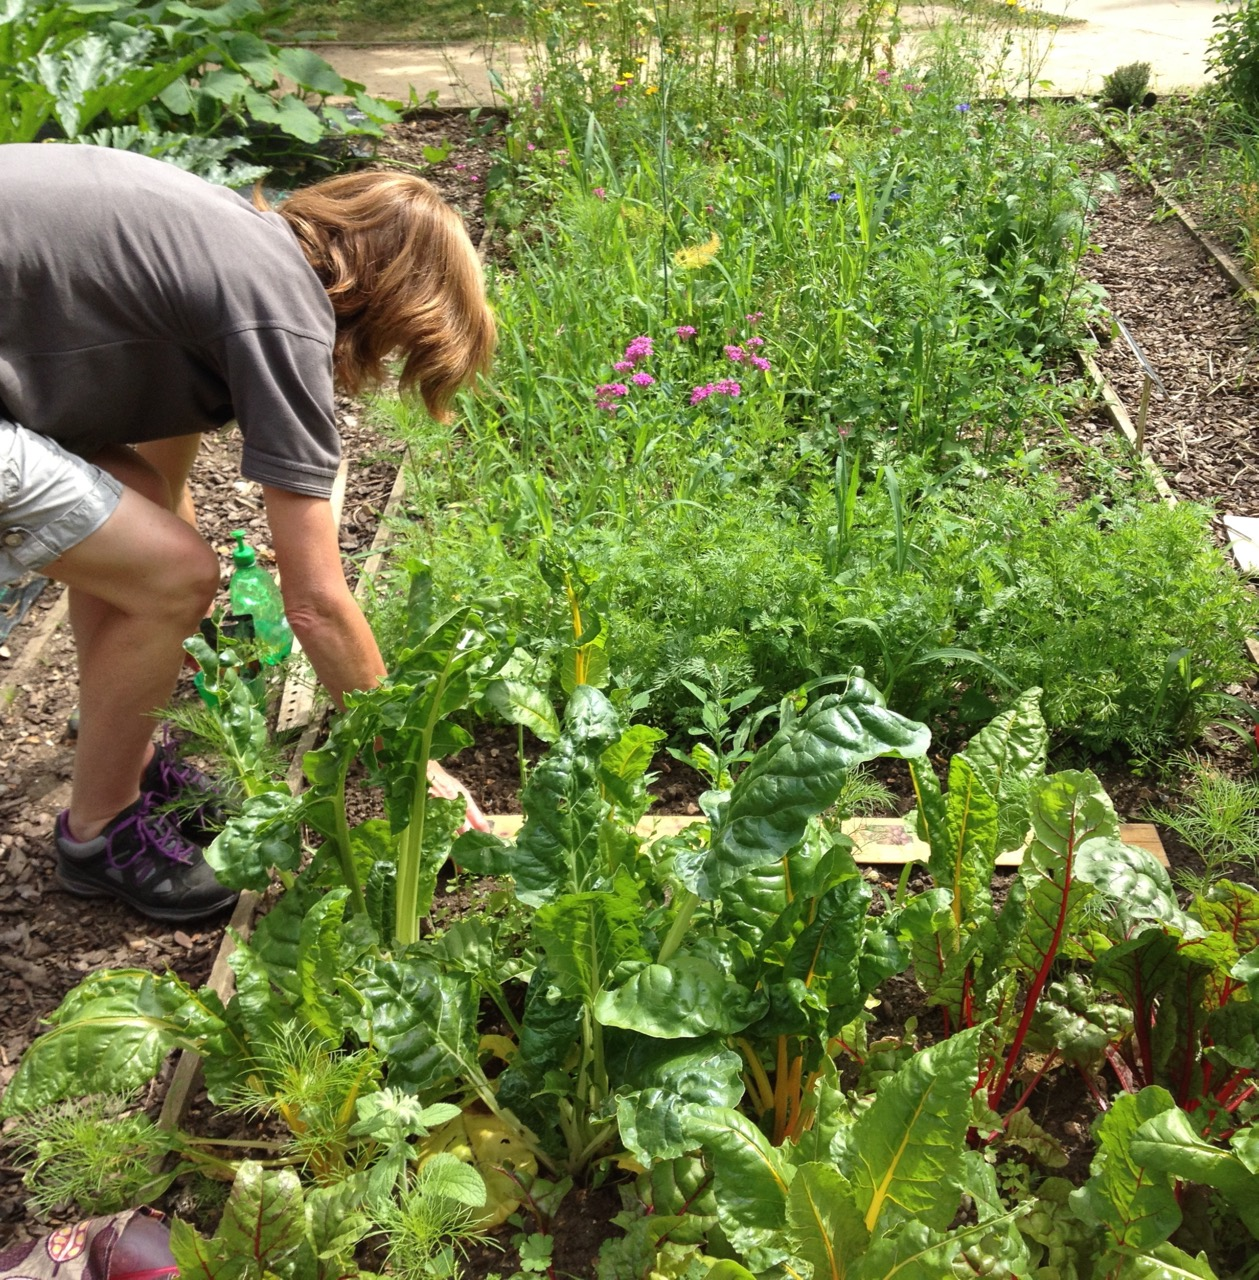 Alison from the RHS sowing seed along a home-made measuring stick